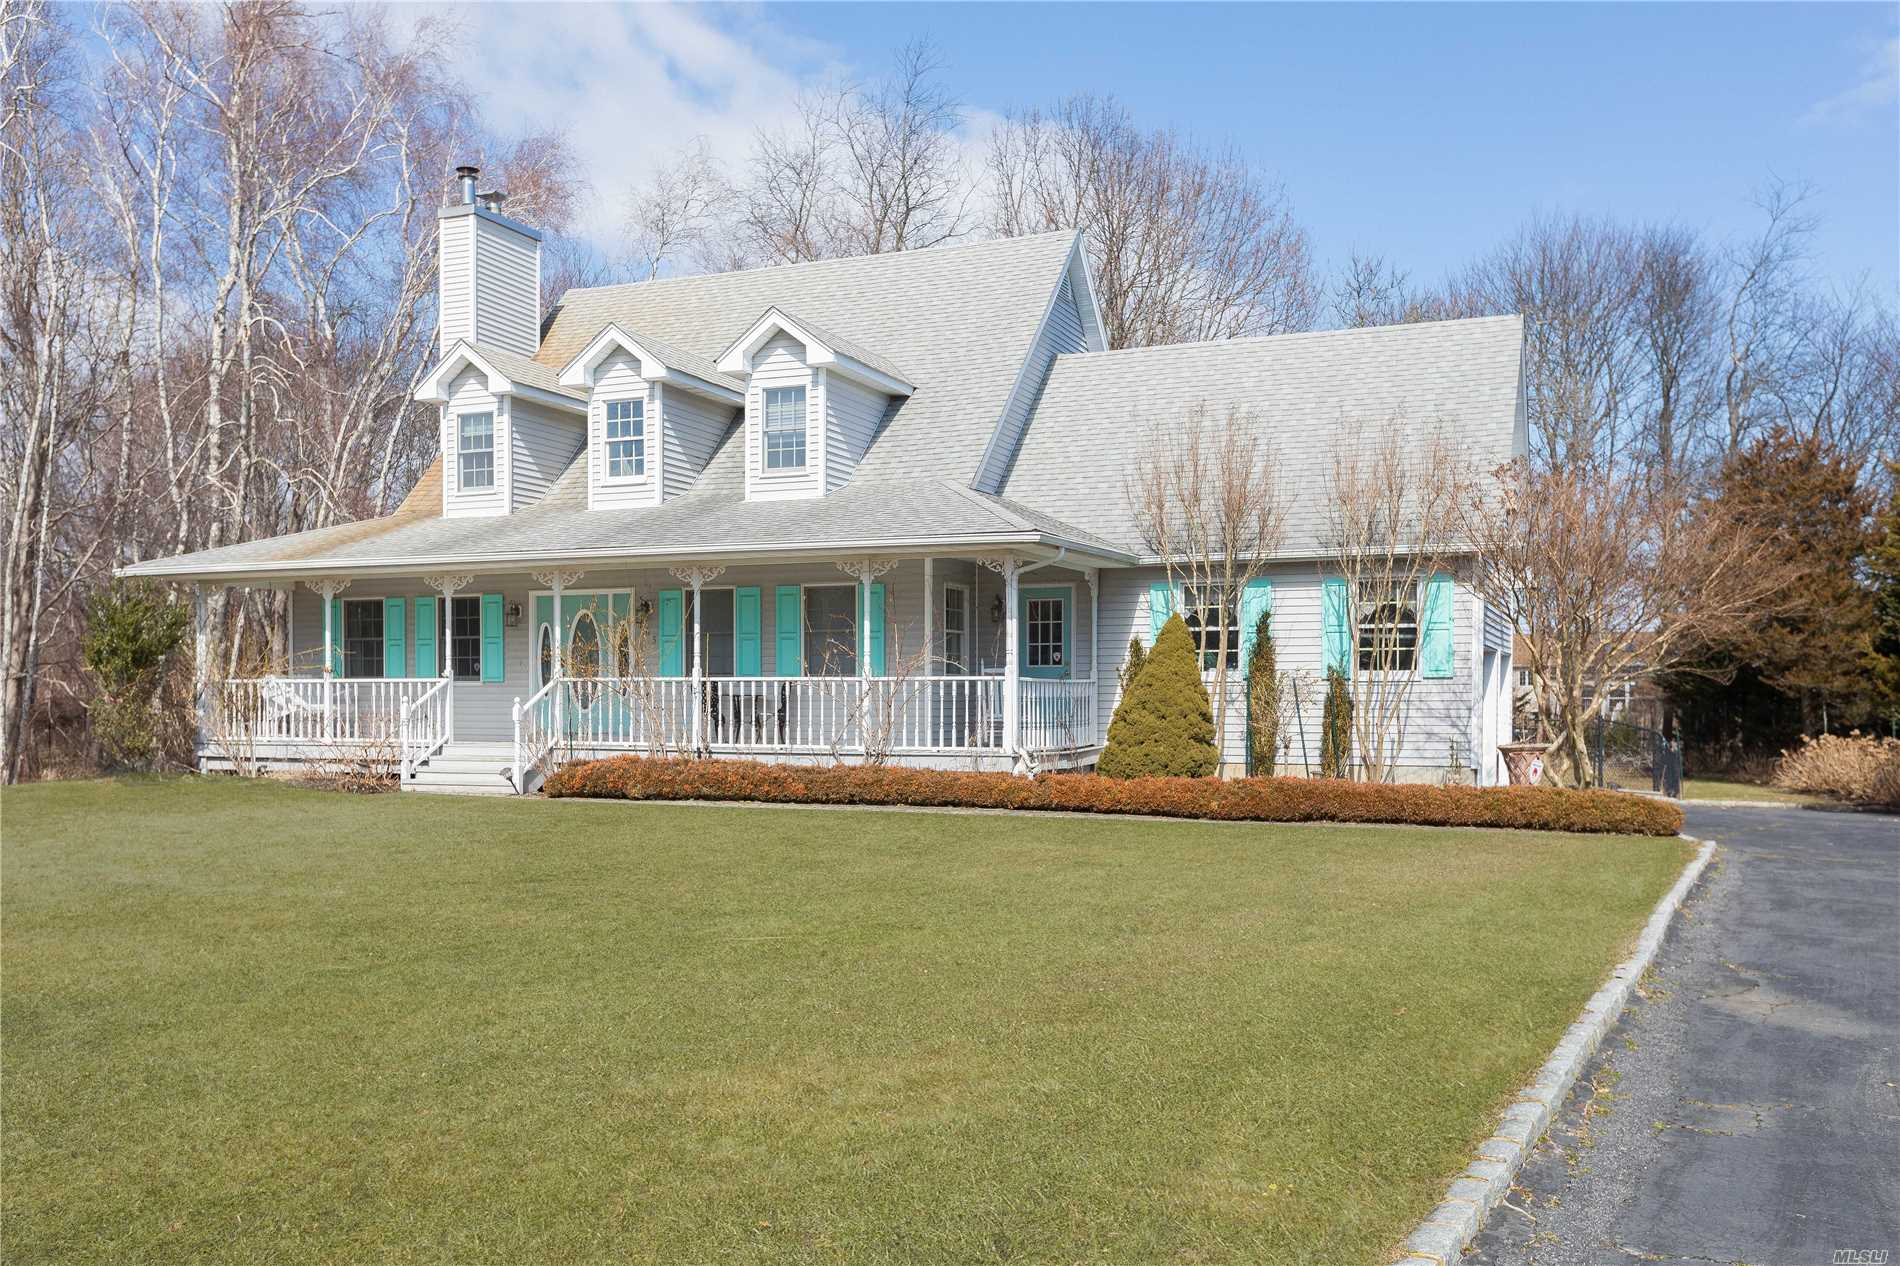 Charming 3 Bedroom With Water views And Deeded Beach Rights In Greenport! A Short Drive To The Heart Of The Village Where Shopping And Restaurants Are Abundant. Farms All Around, Including Vineyards.